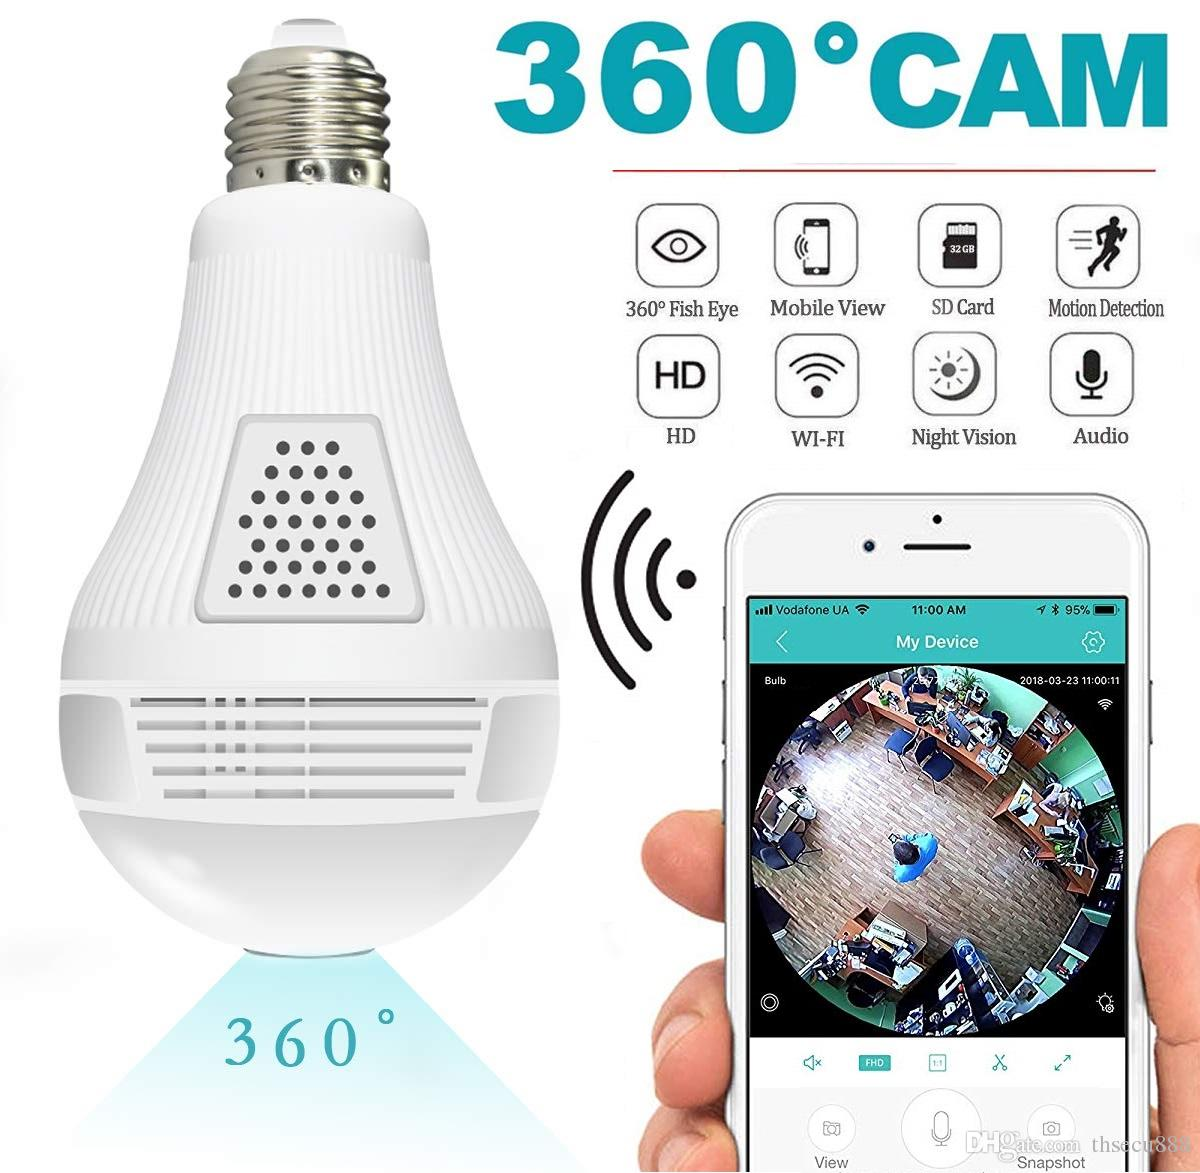 2019 Light 960P 1080P WiFi Panoramic bulb security cameras 360° Home Security camera system wireless IP 3D FishEye monitor light Bulb camera